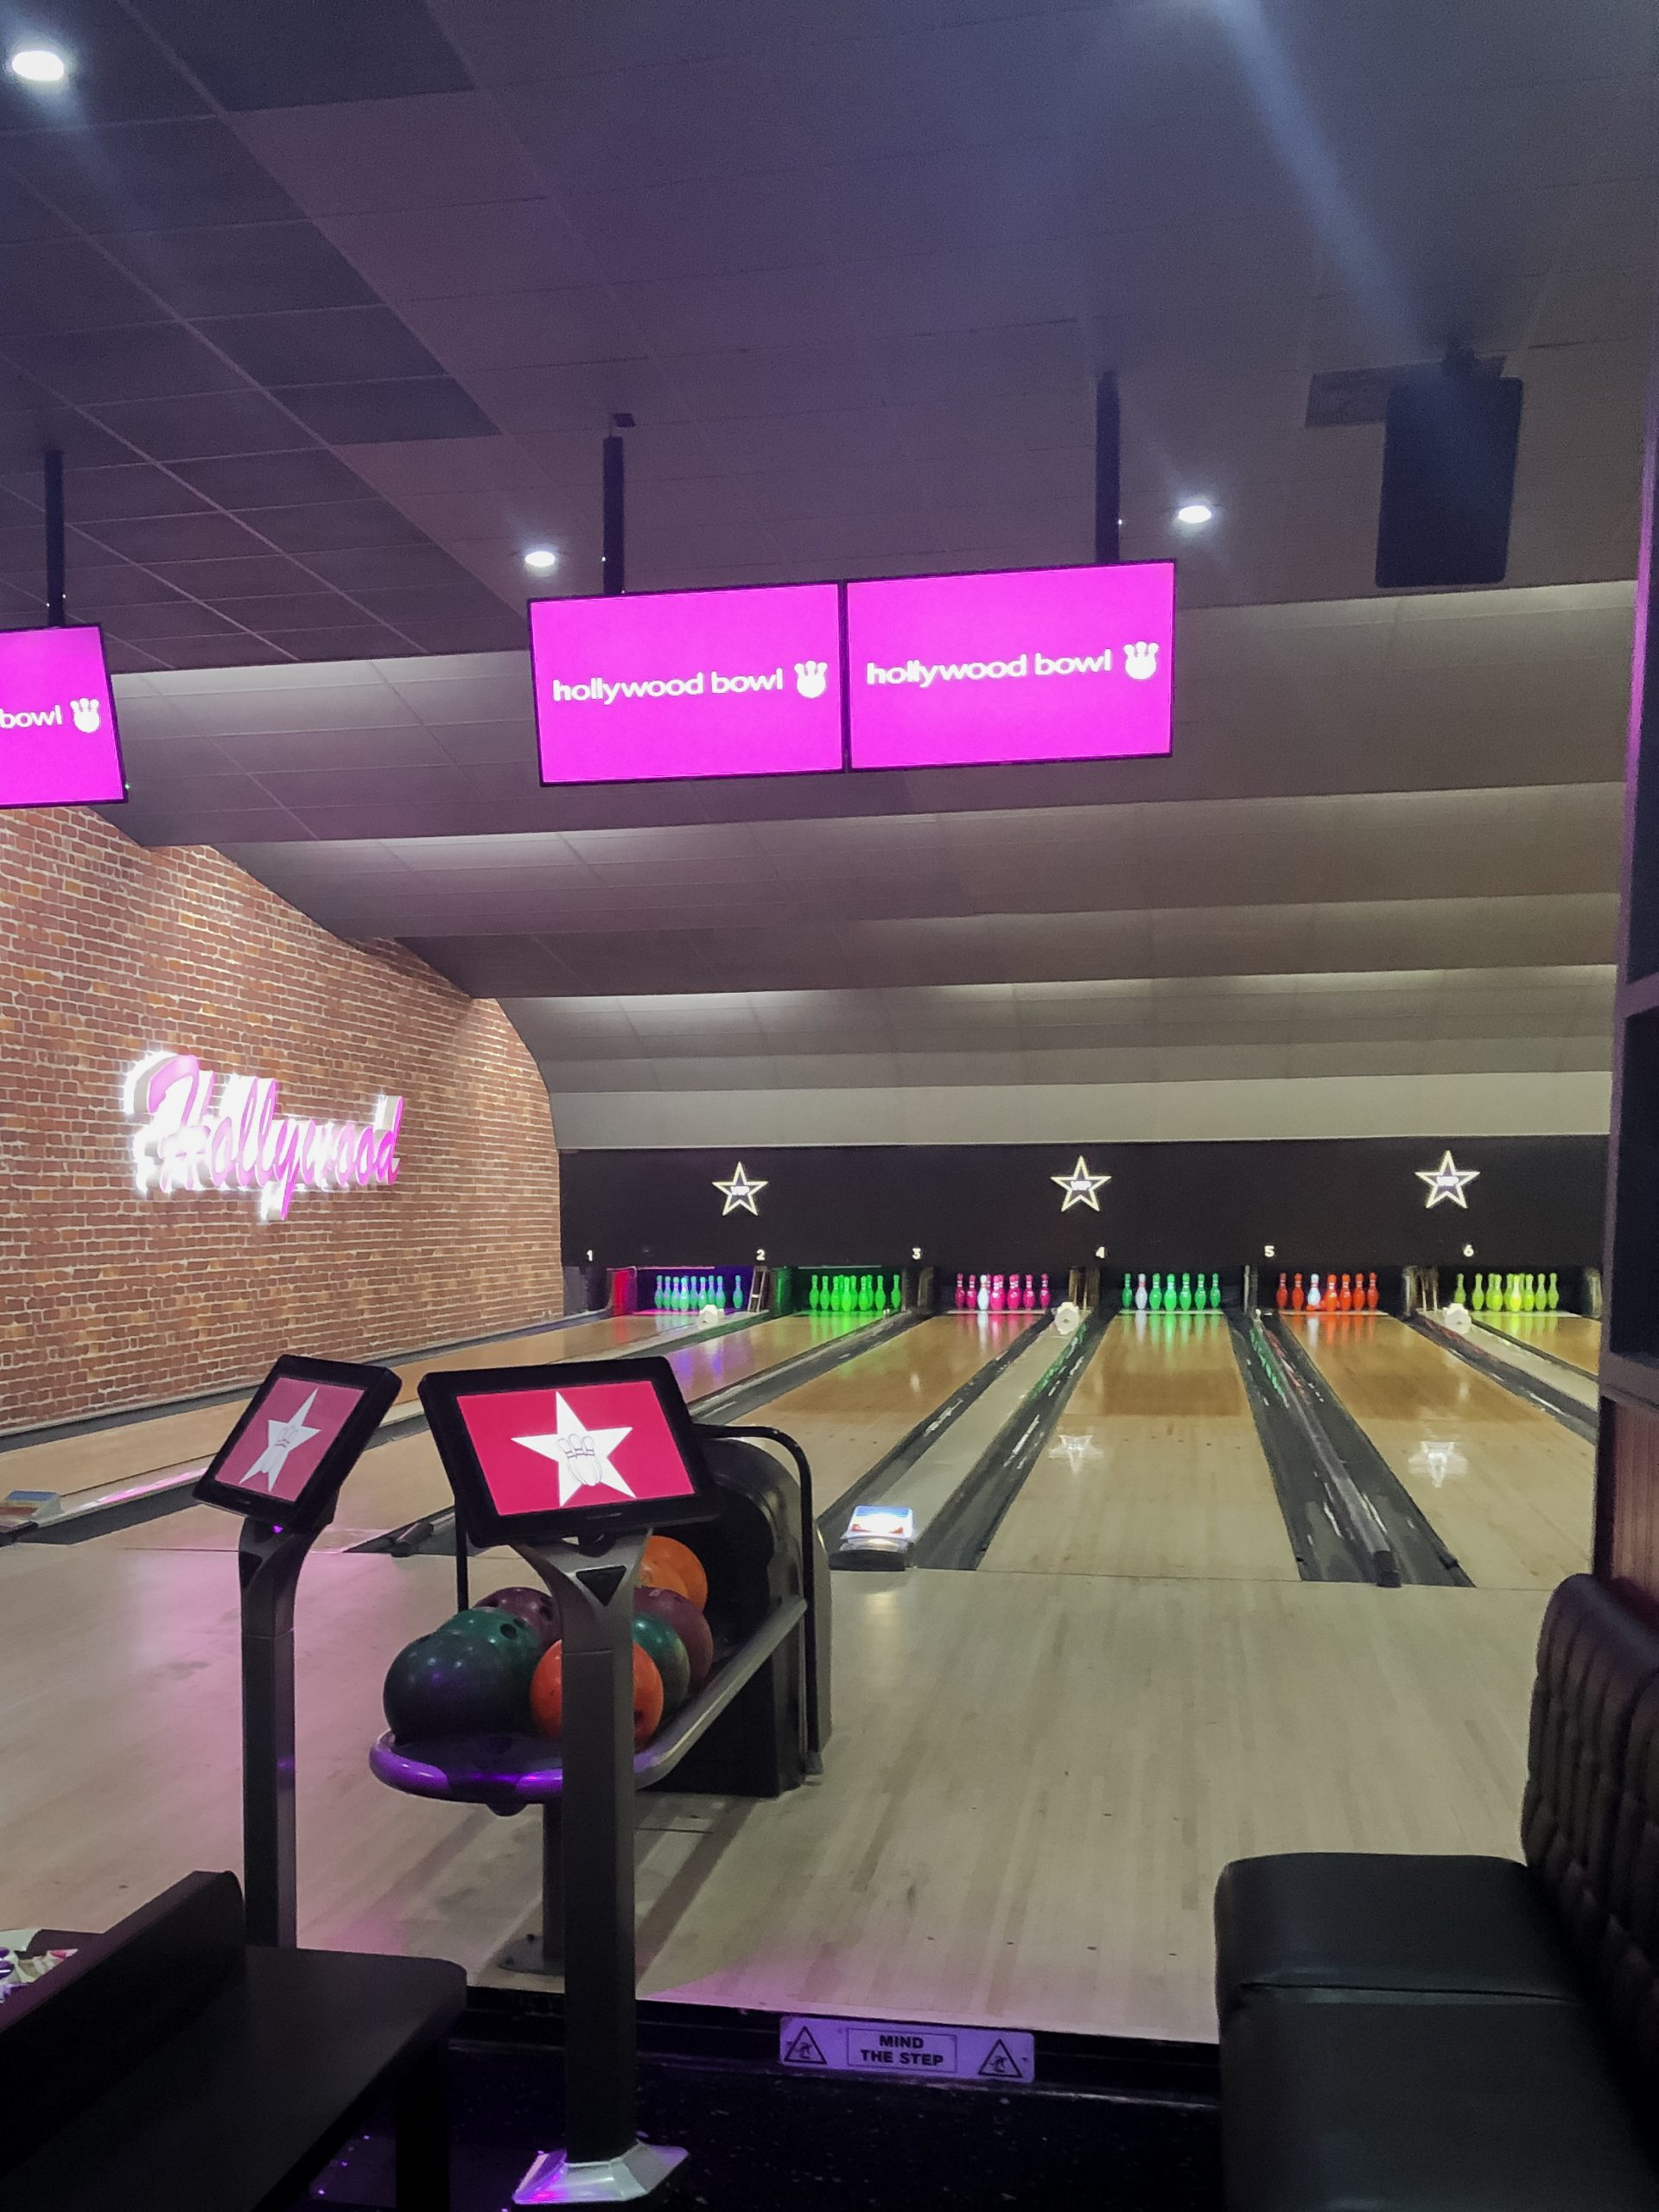 Shot of VIP lanes in Hollywood Bowl Meridian.